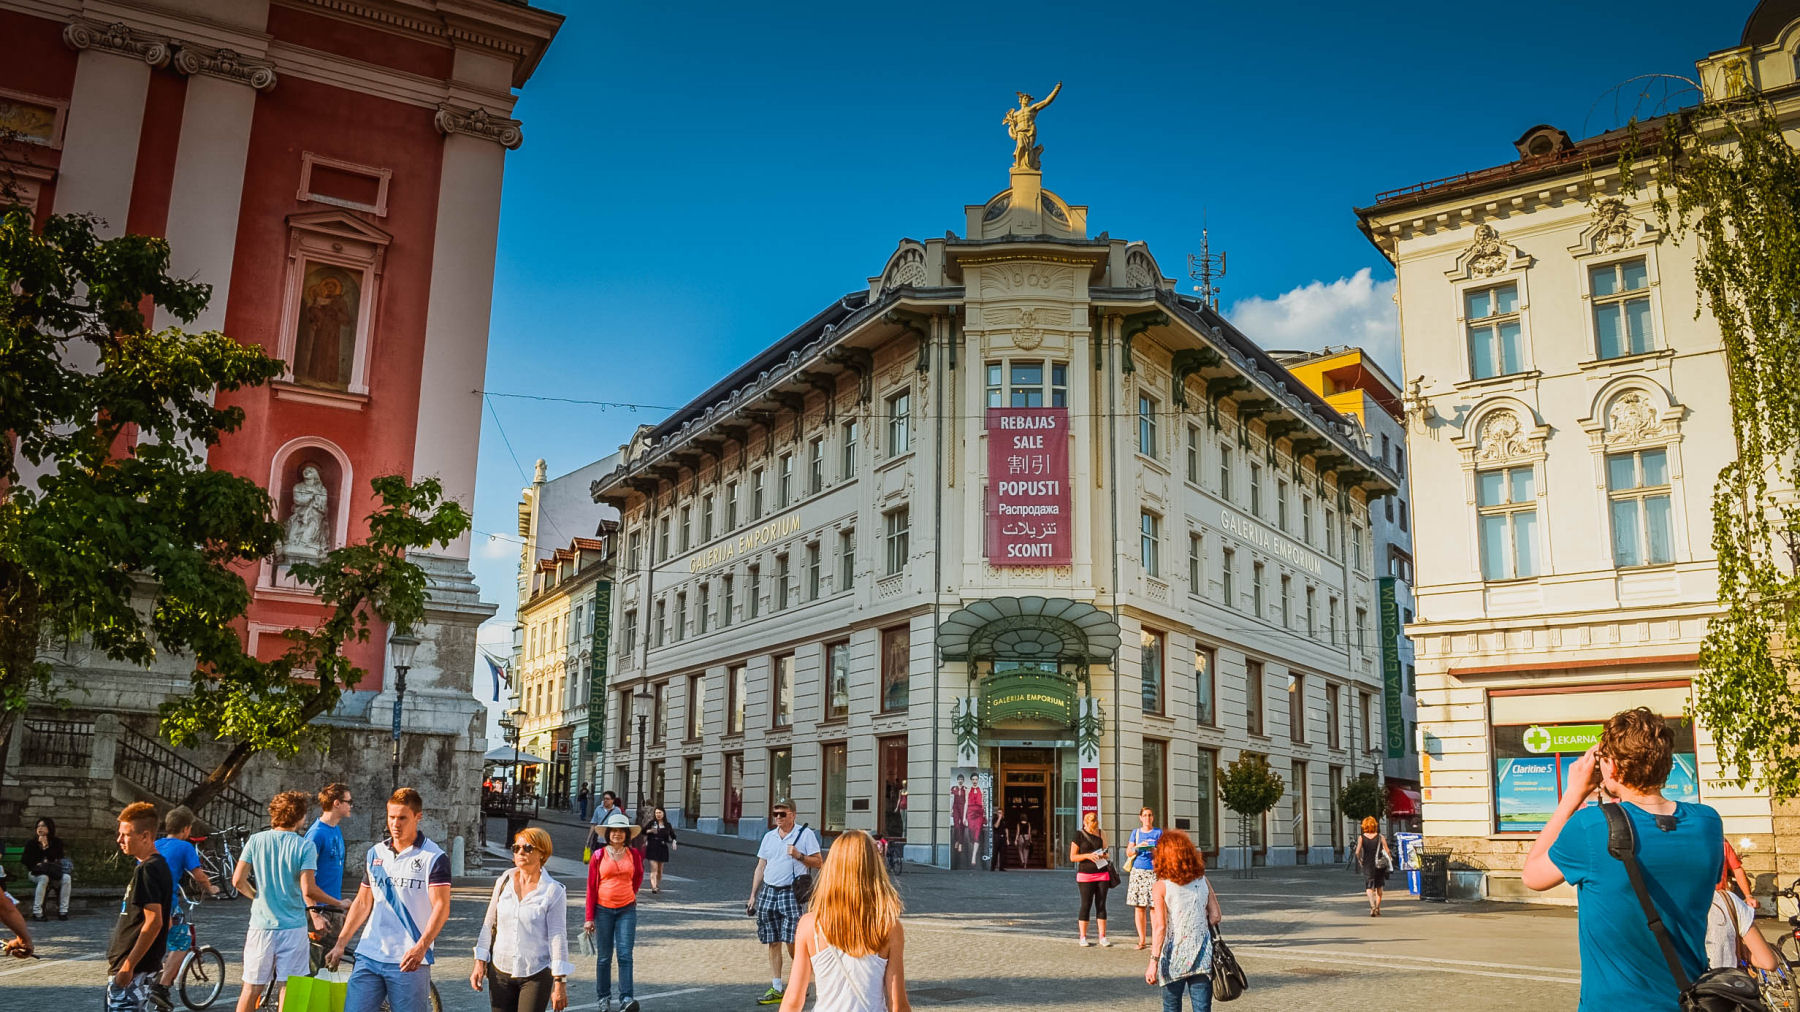 Ljubljana old town is mostly Baroque, with some Renaissance and Art Nouveau buildings